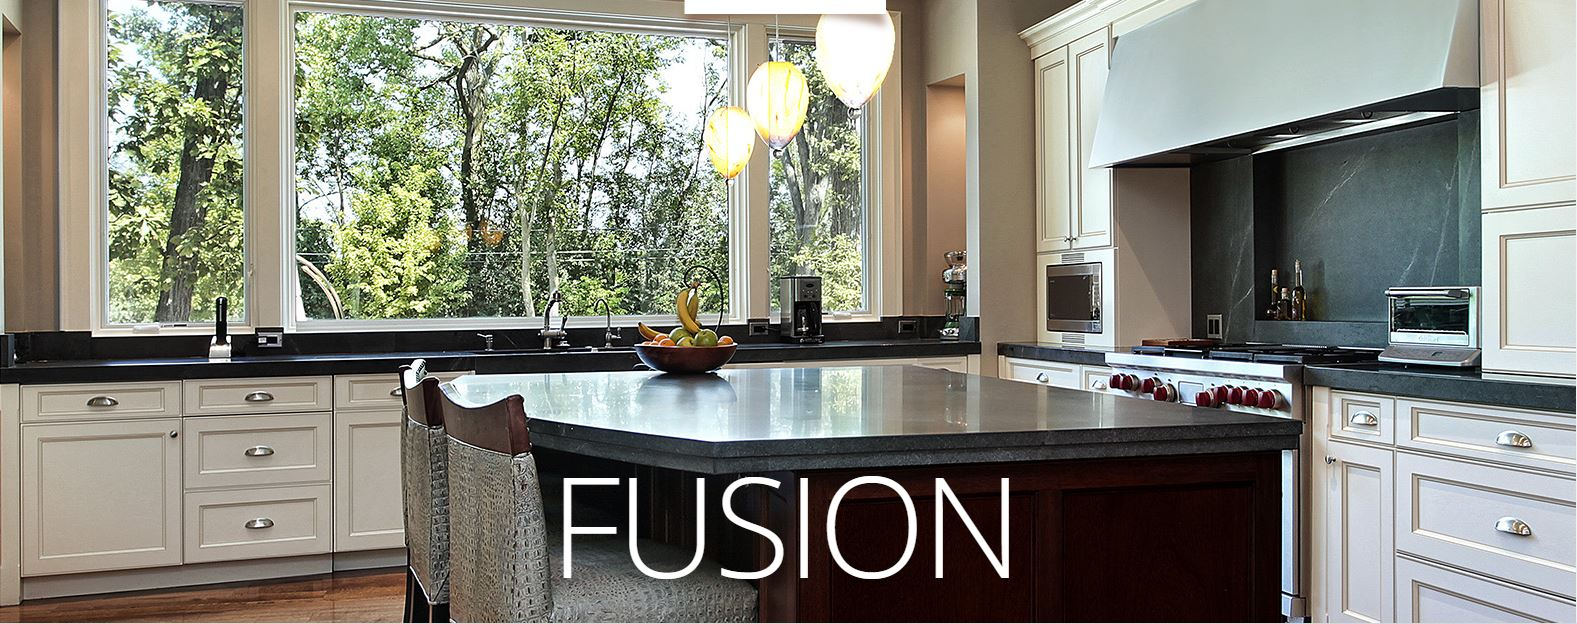 new kitchen cabinet doors images of cabinets fabuwood fusion | designeric